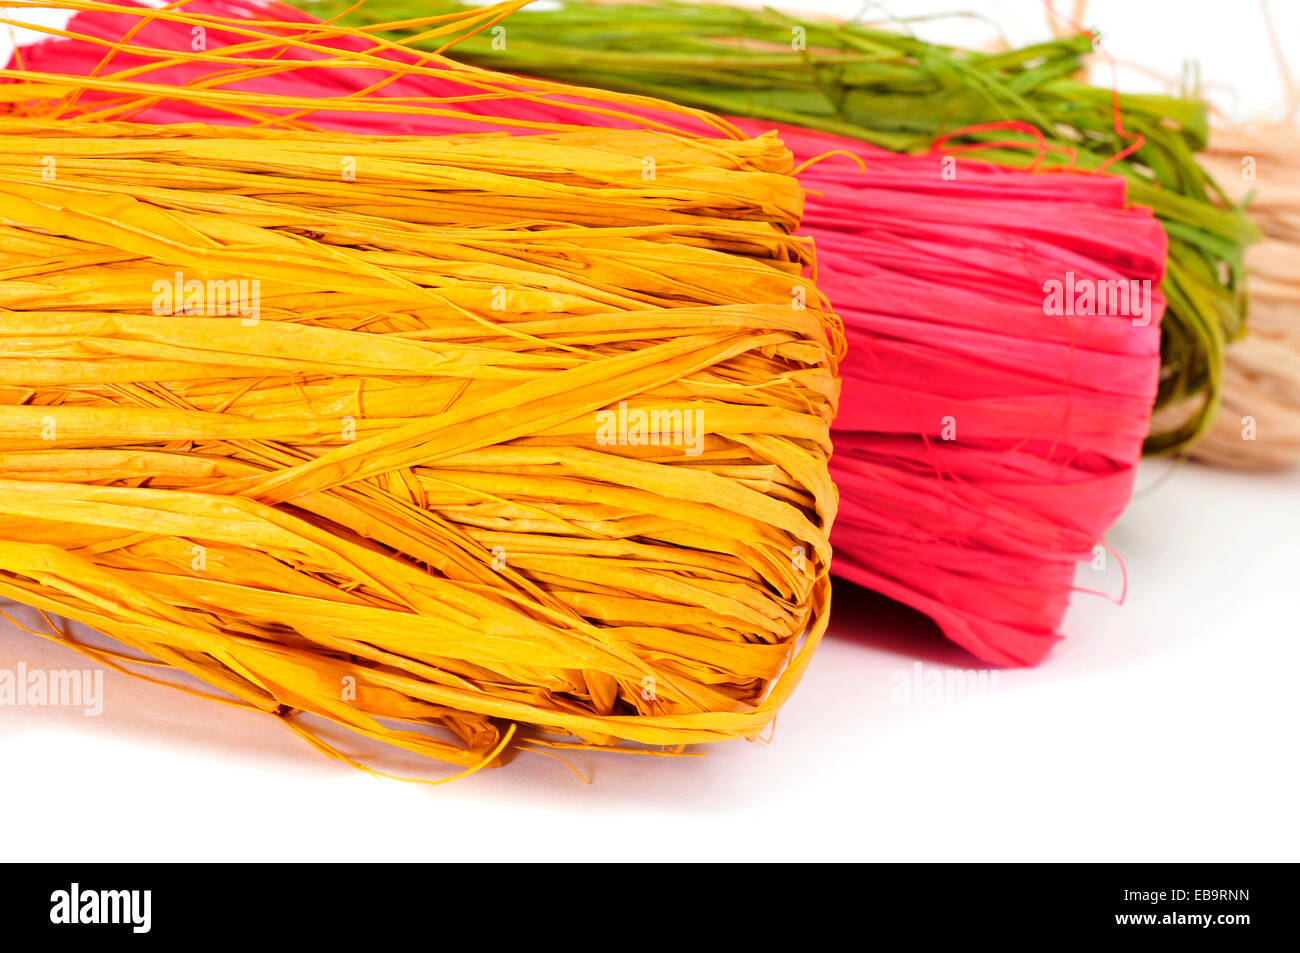 some skeins of natural raffia of different colors on a white background - Stock Image